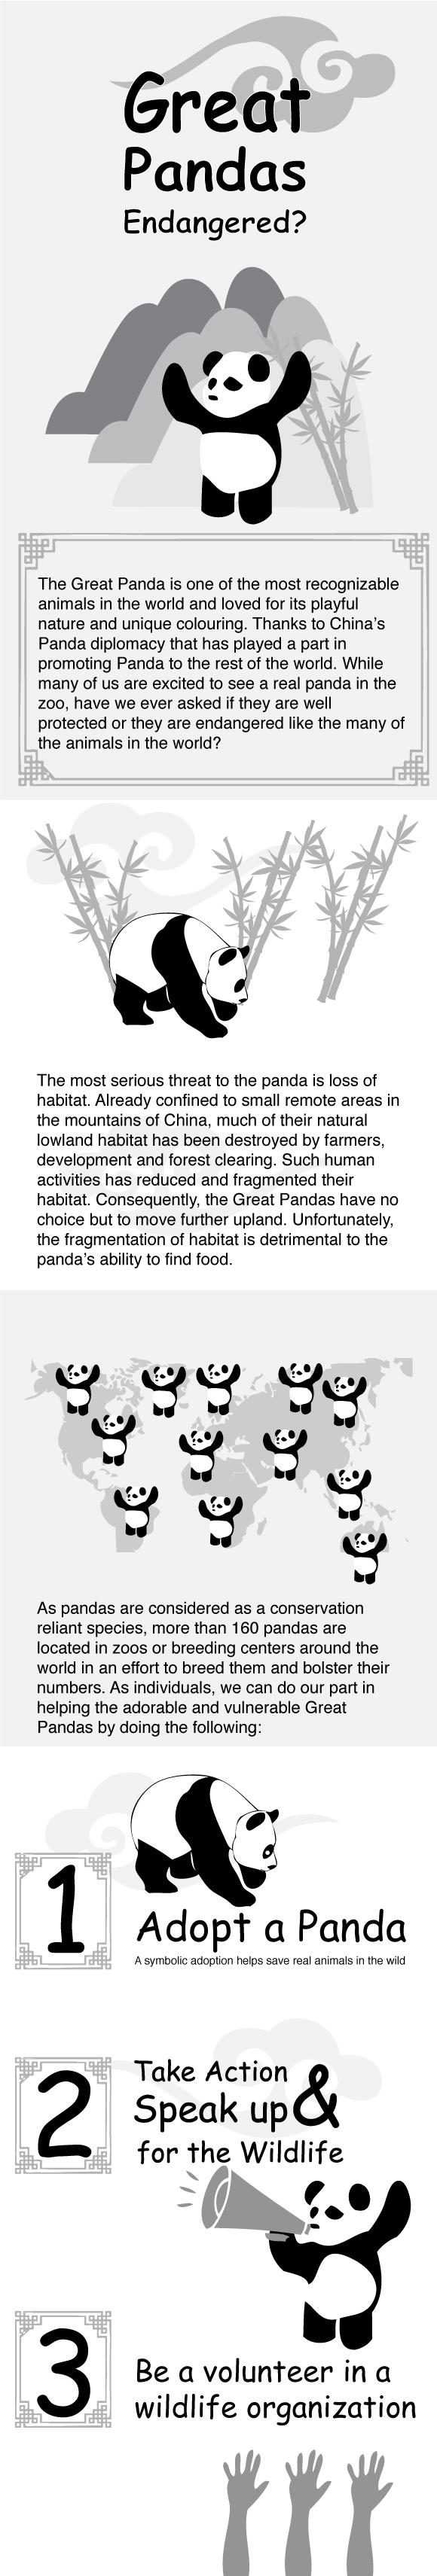 Great Pandas Endangered